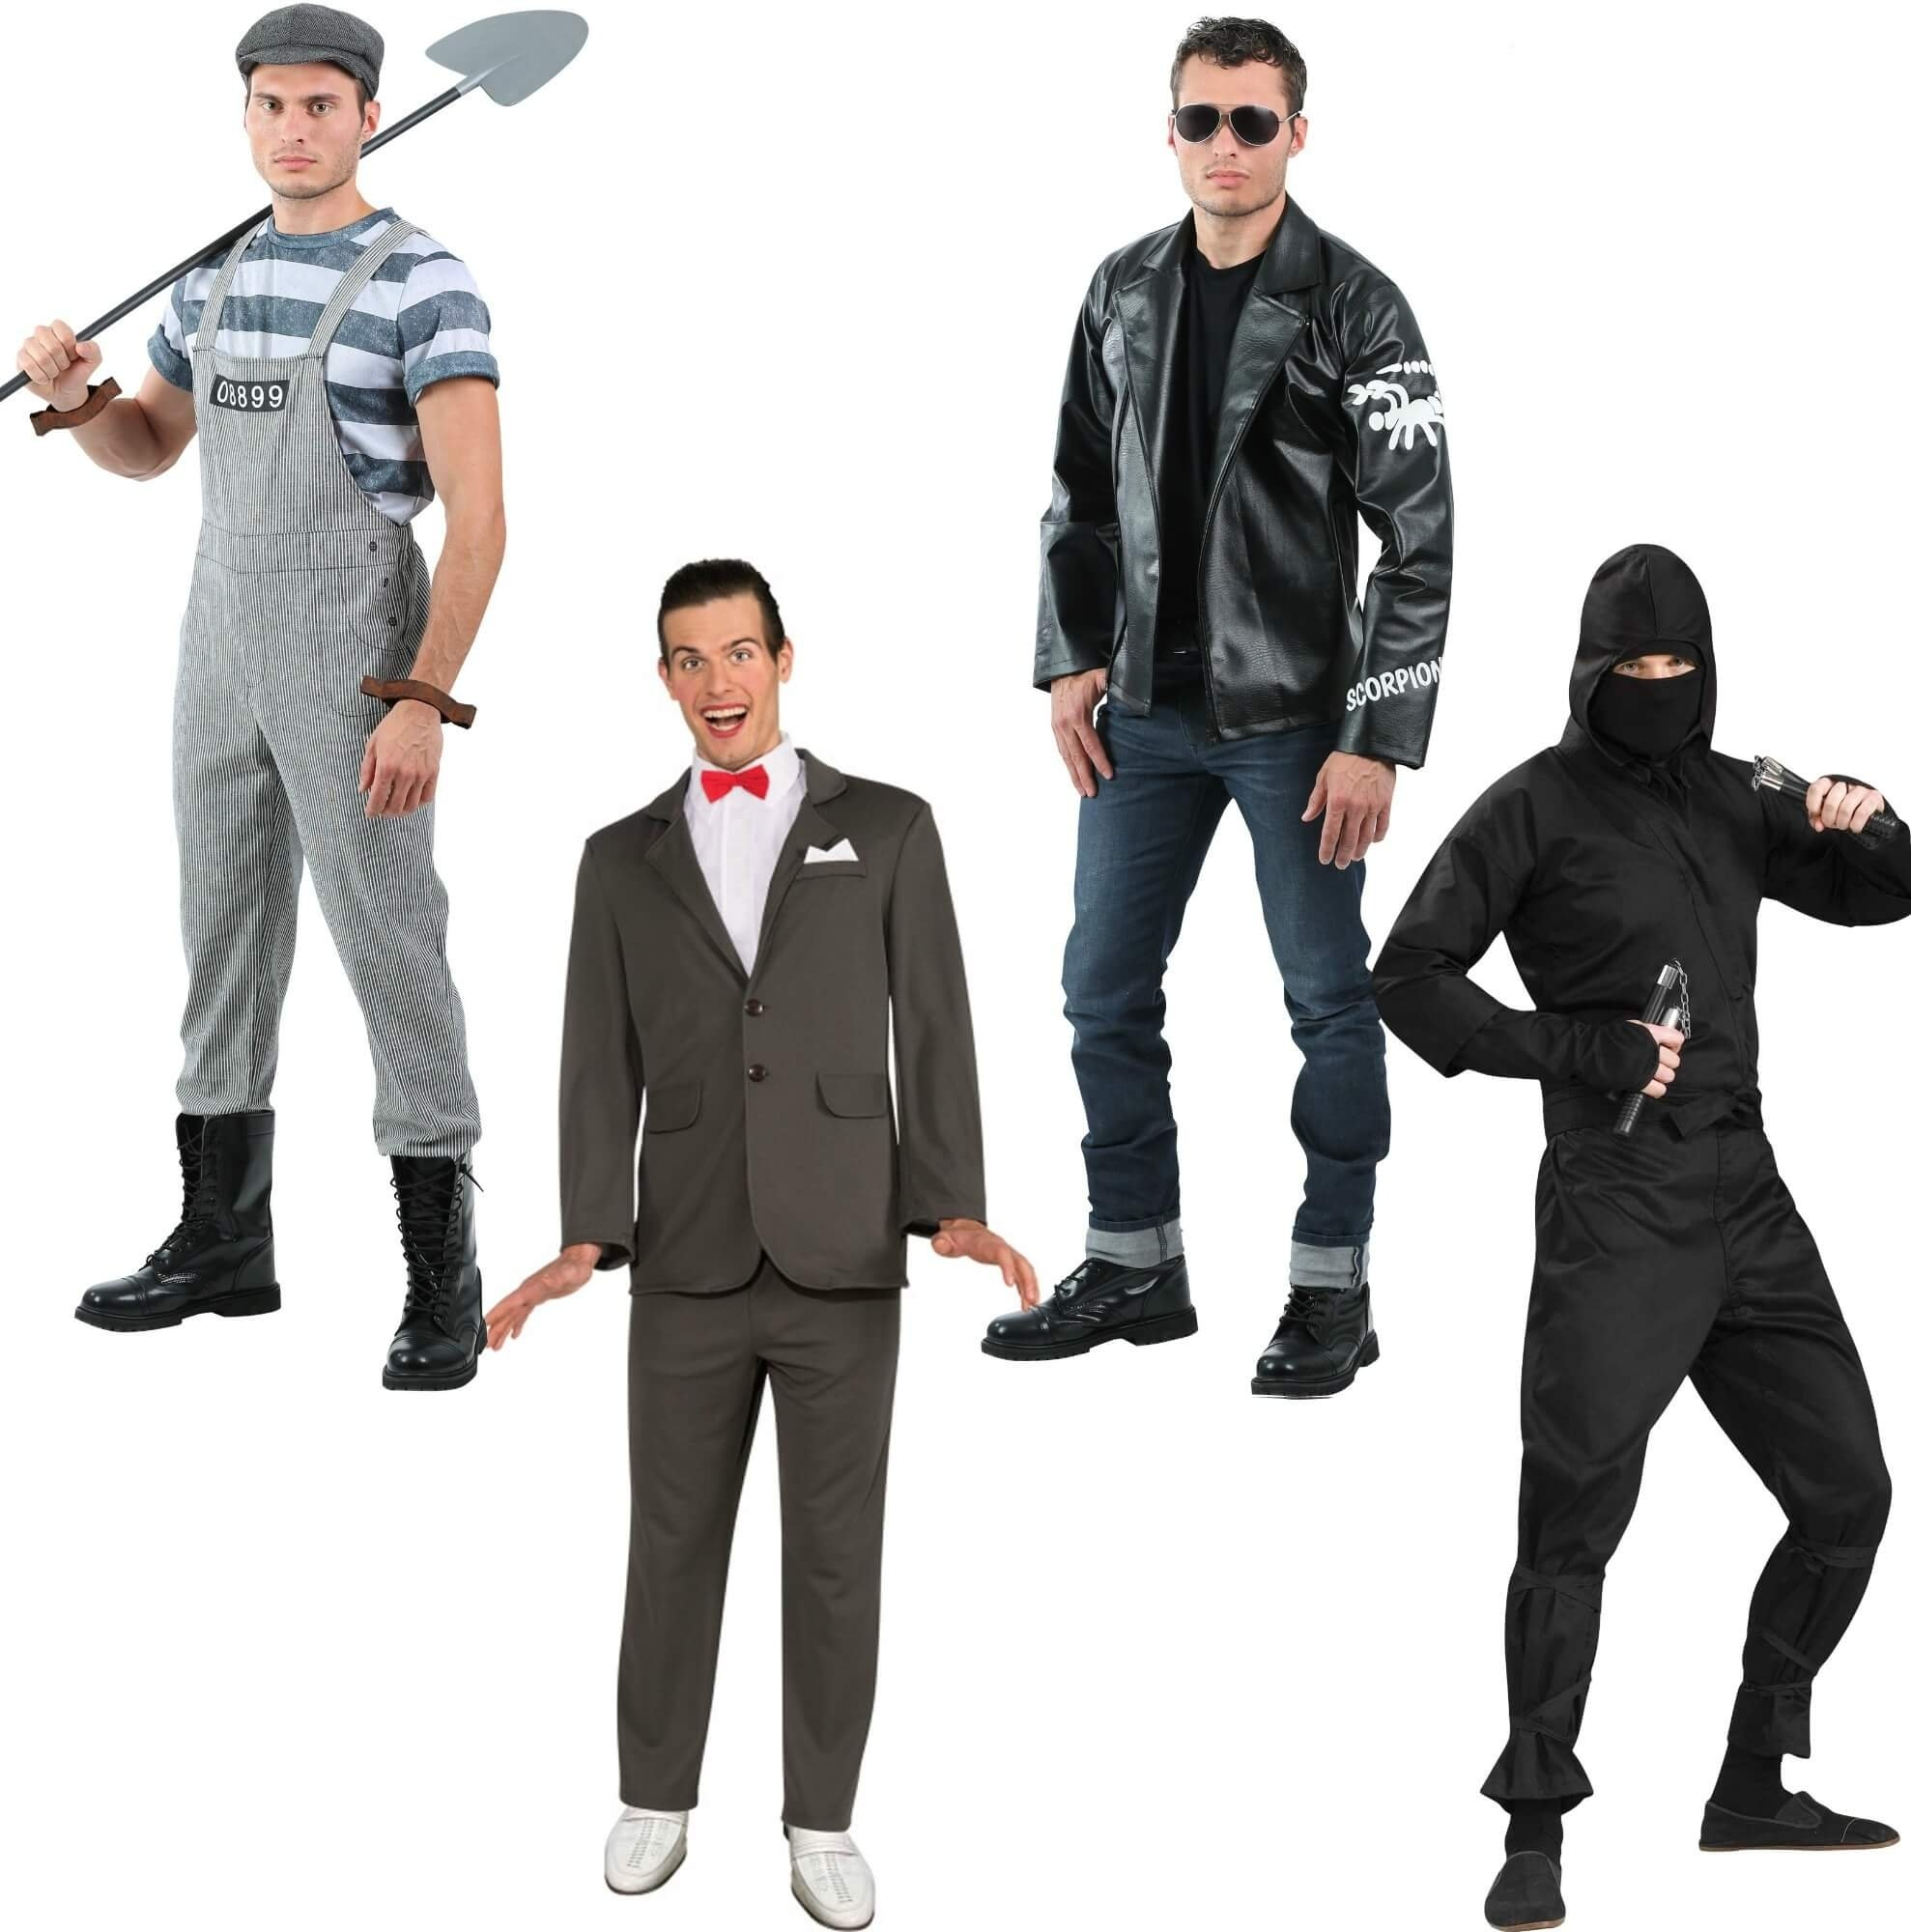 10 Great Cheap Halloween Costumes Ideas For Men cheap halloween costume ideas halloween costumes blog 5